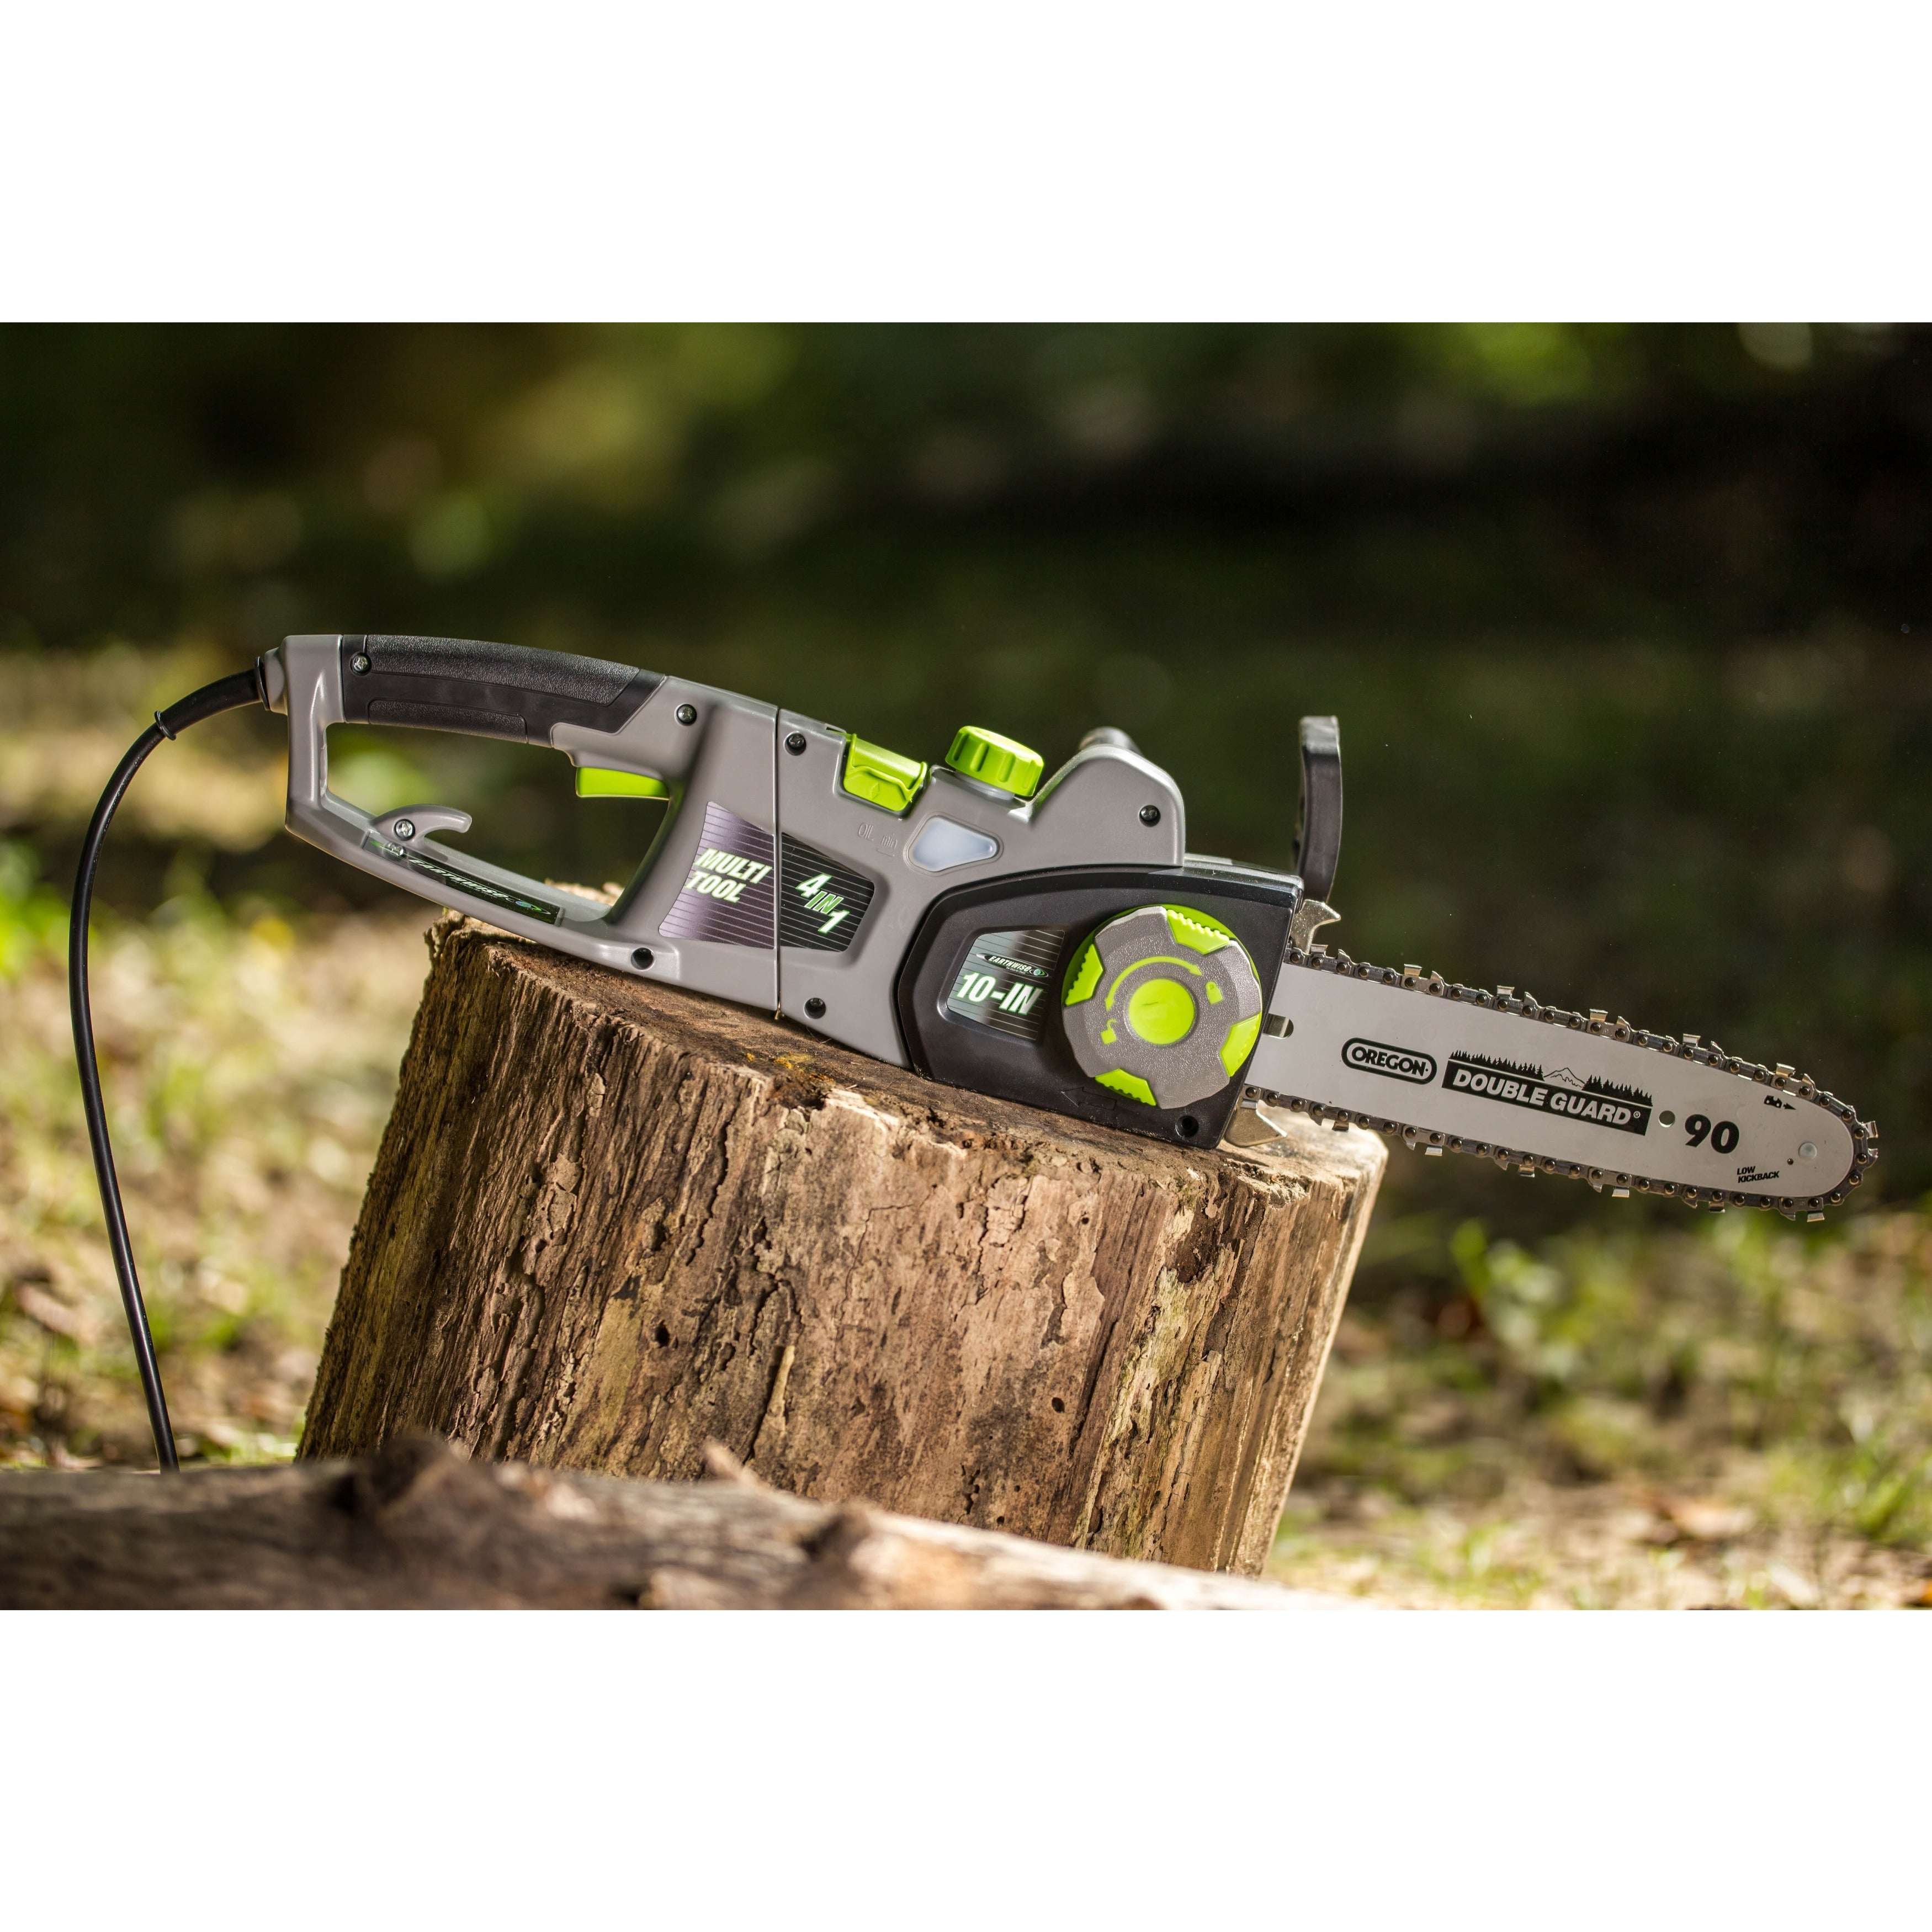 Earthwise 4 in 1 electric chainsaw with pole saw hedge trimmer earthwise 4 in 1 electric chainsaw with pole saw hedge trimmer and pole hedge trimmer free shipping today overstock 20665523 greentooth Gallery